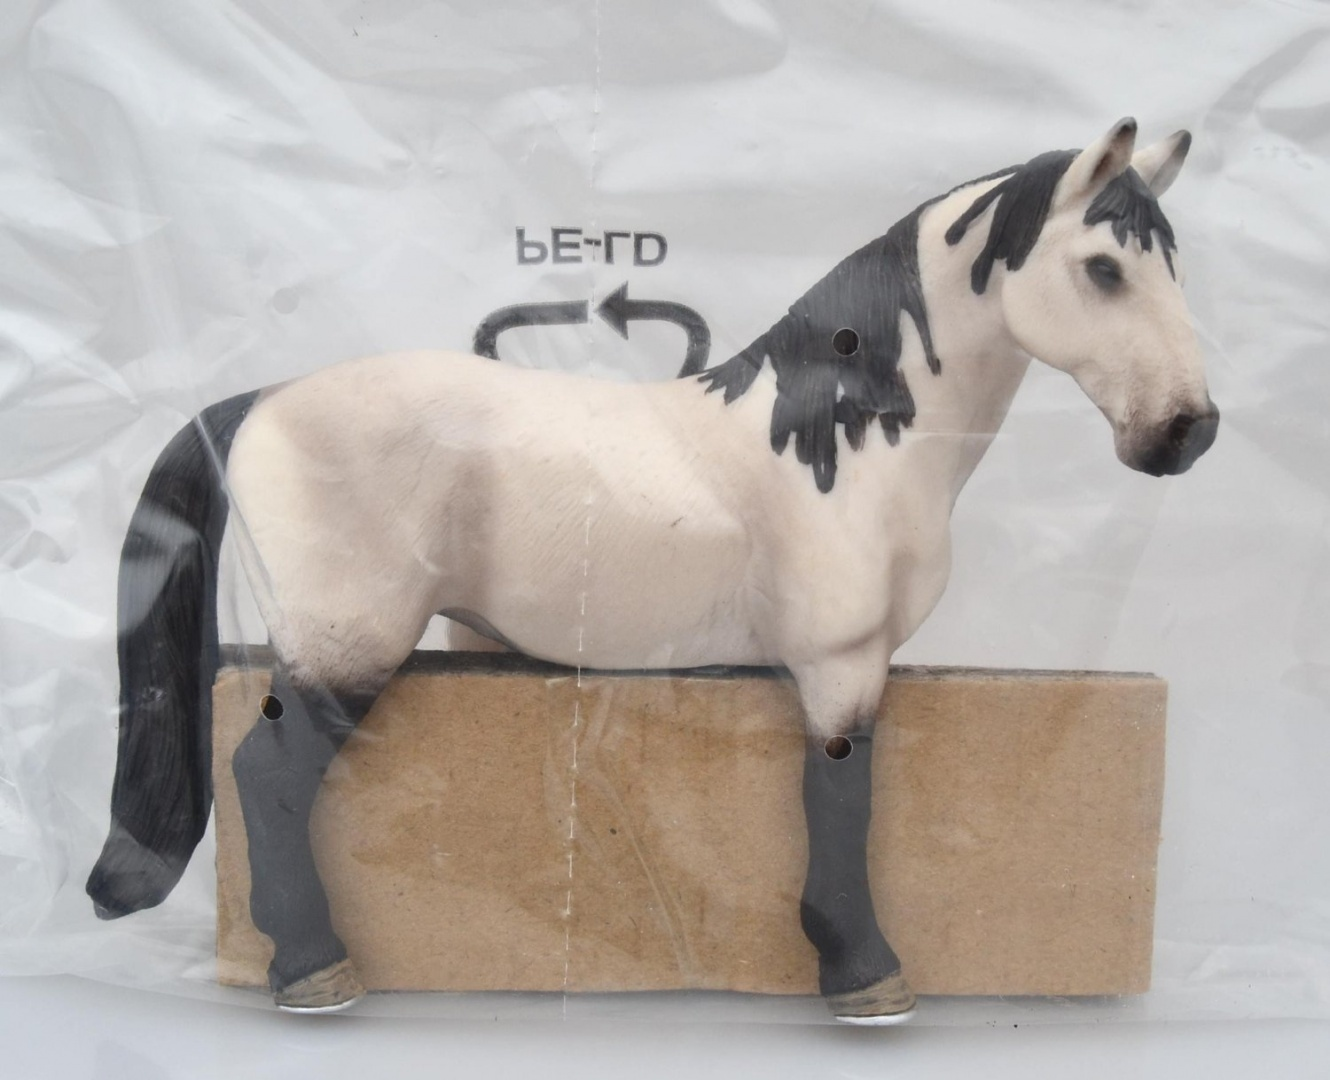 Schleich Exclusive Horse Toys  Buy Online from Fishpond.com.hk 27f8948ee21